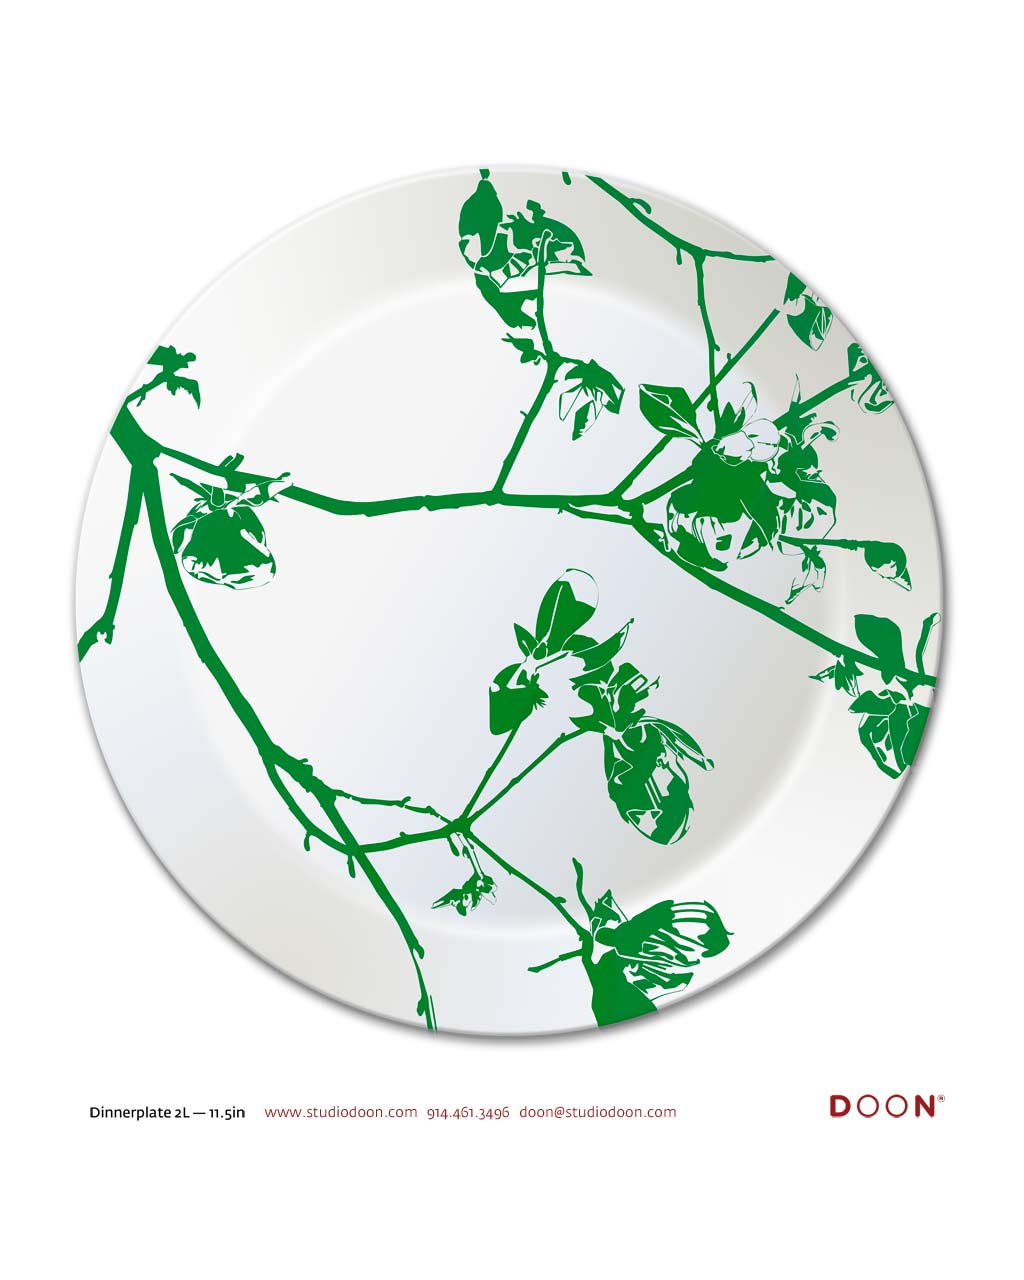 Dinnerplate_2L